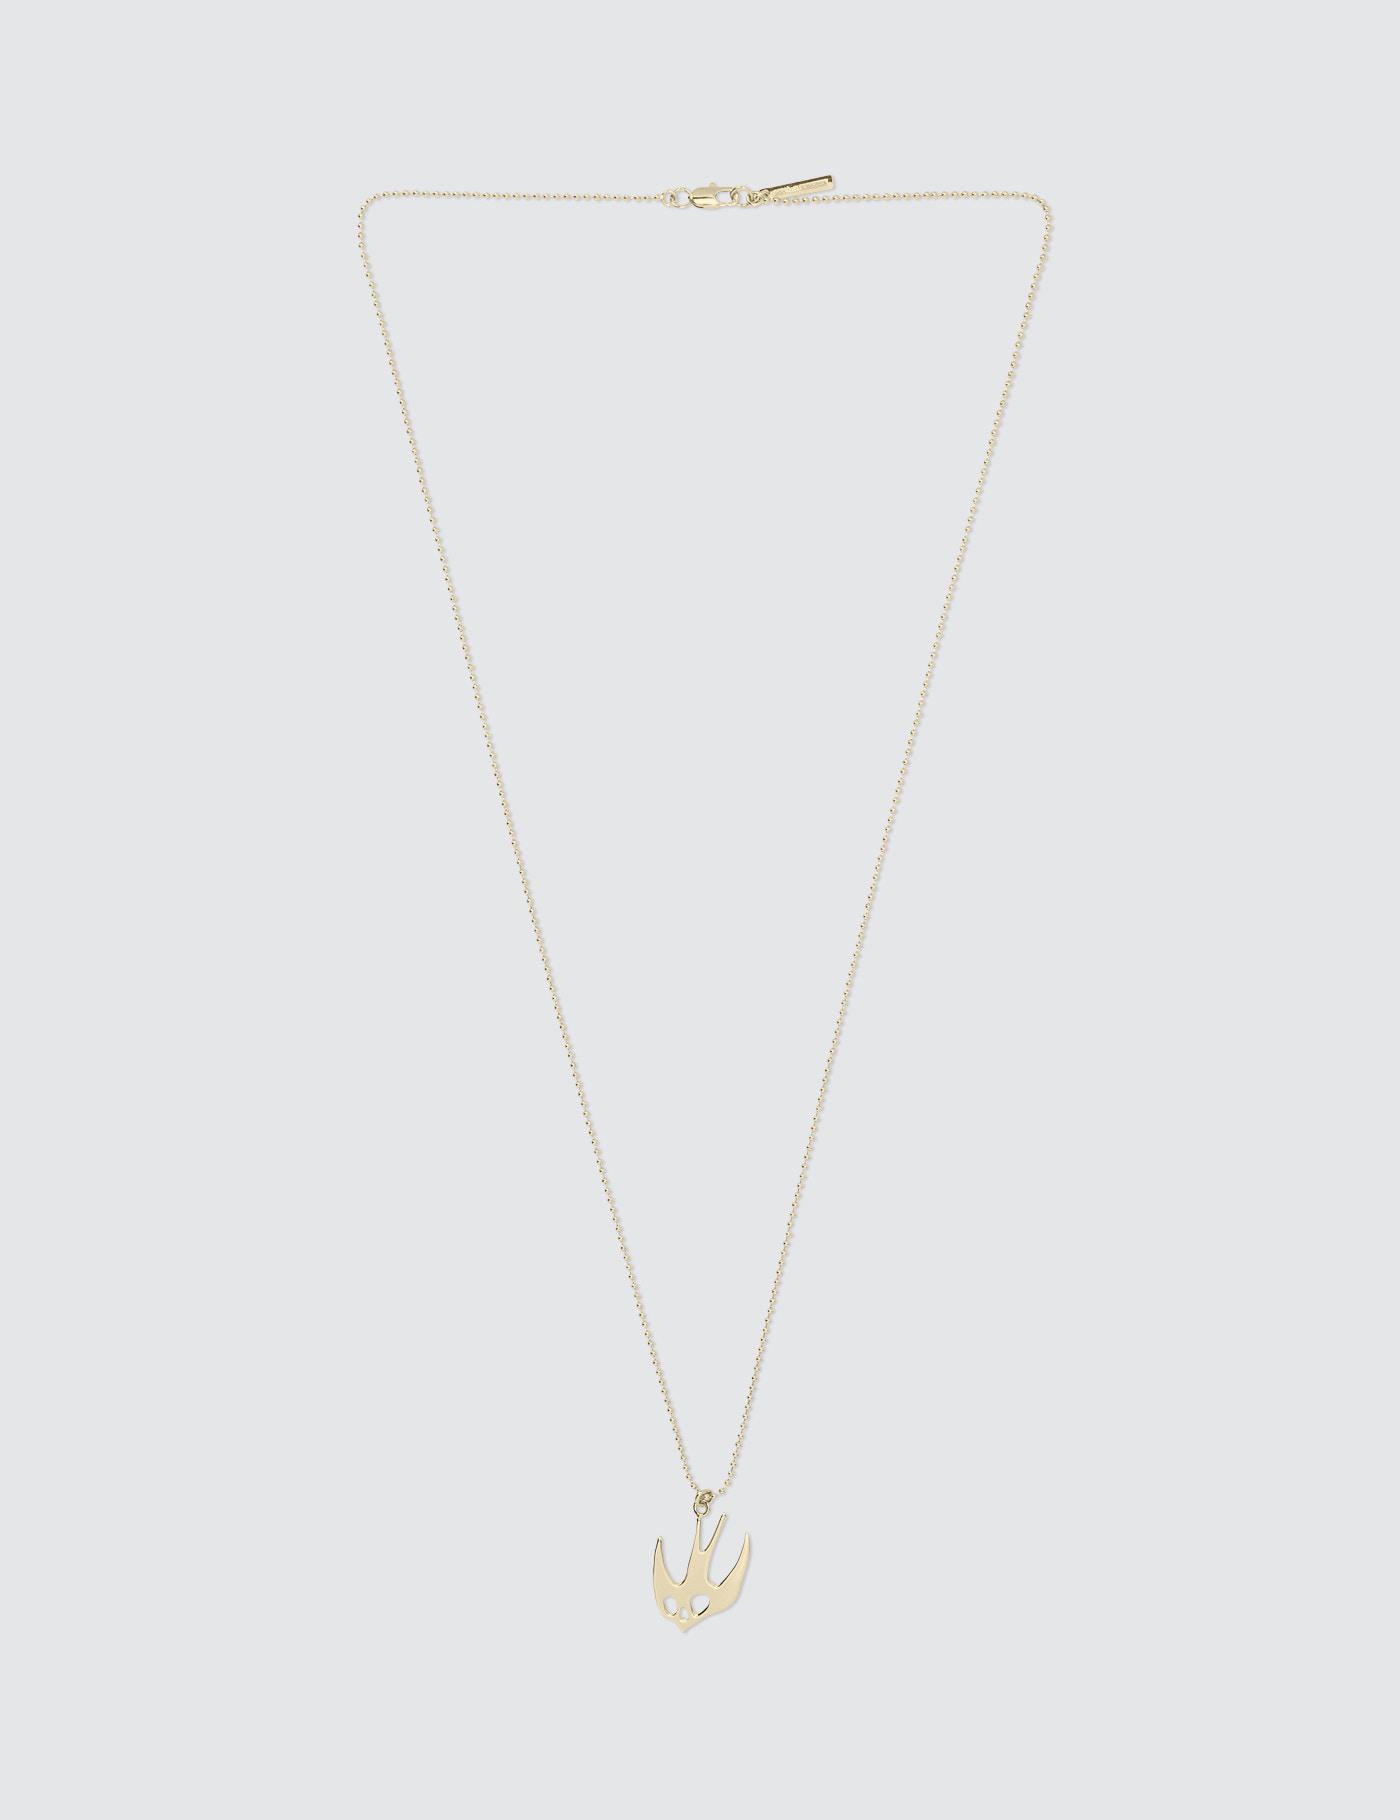 swallow necklace - Metallic Alexander McQueen y9BM25